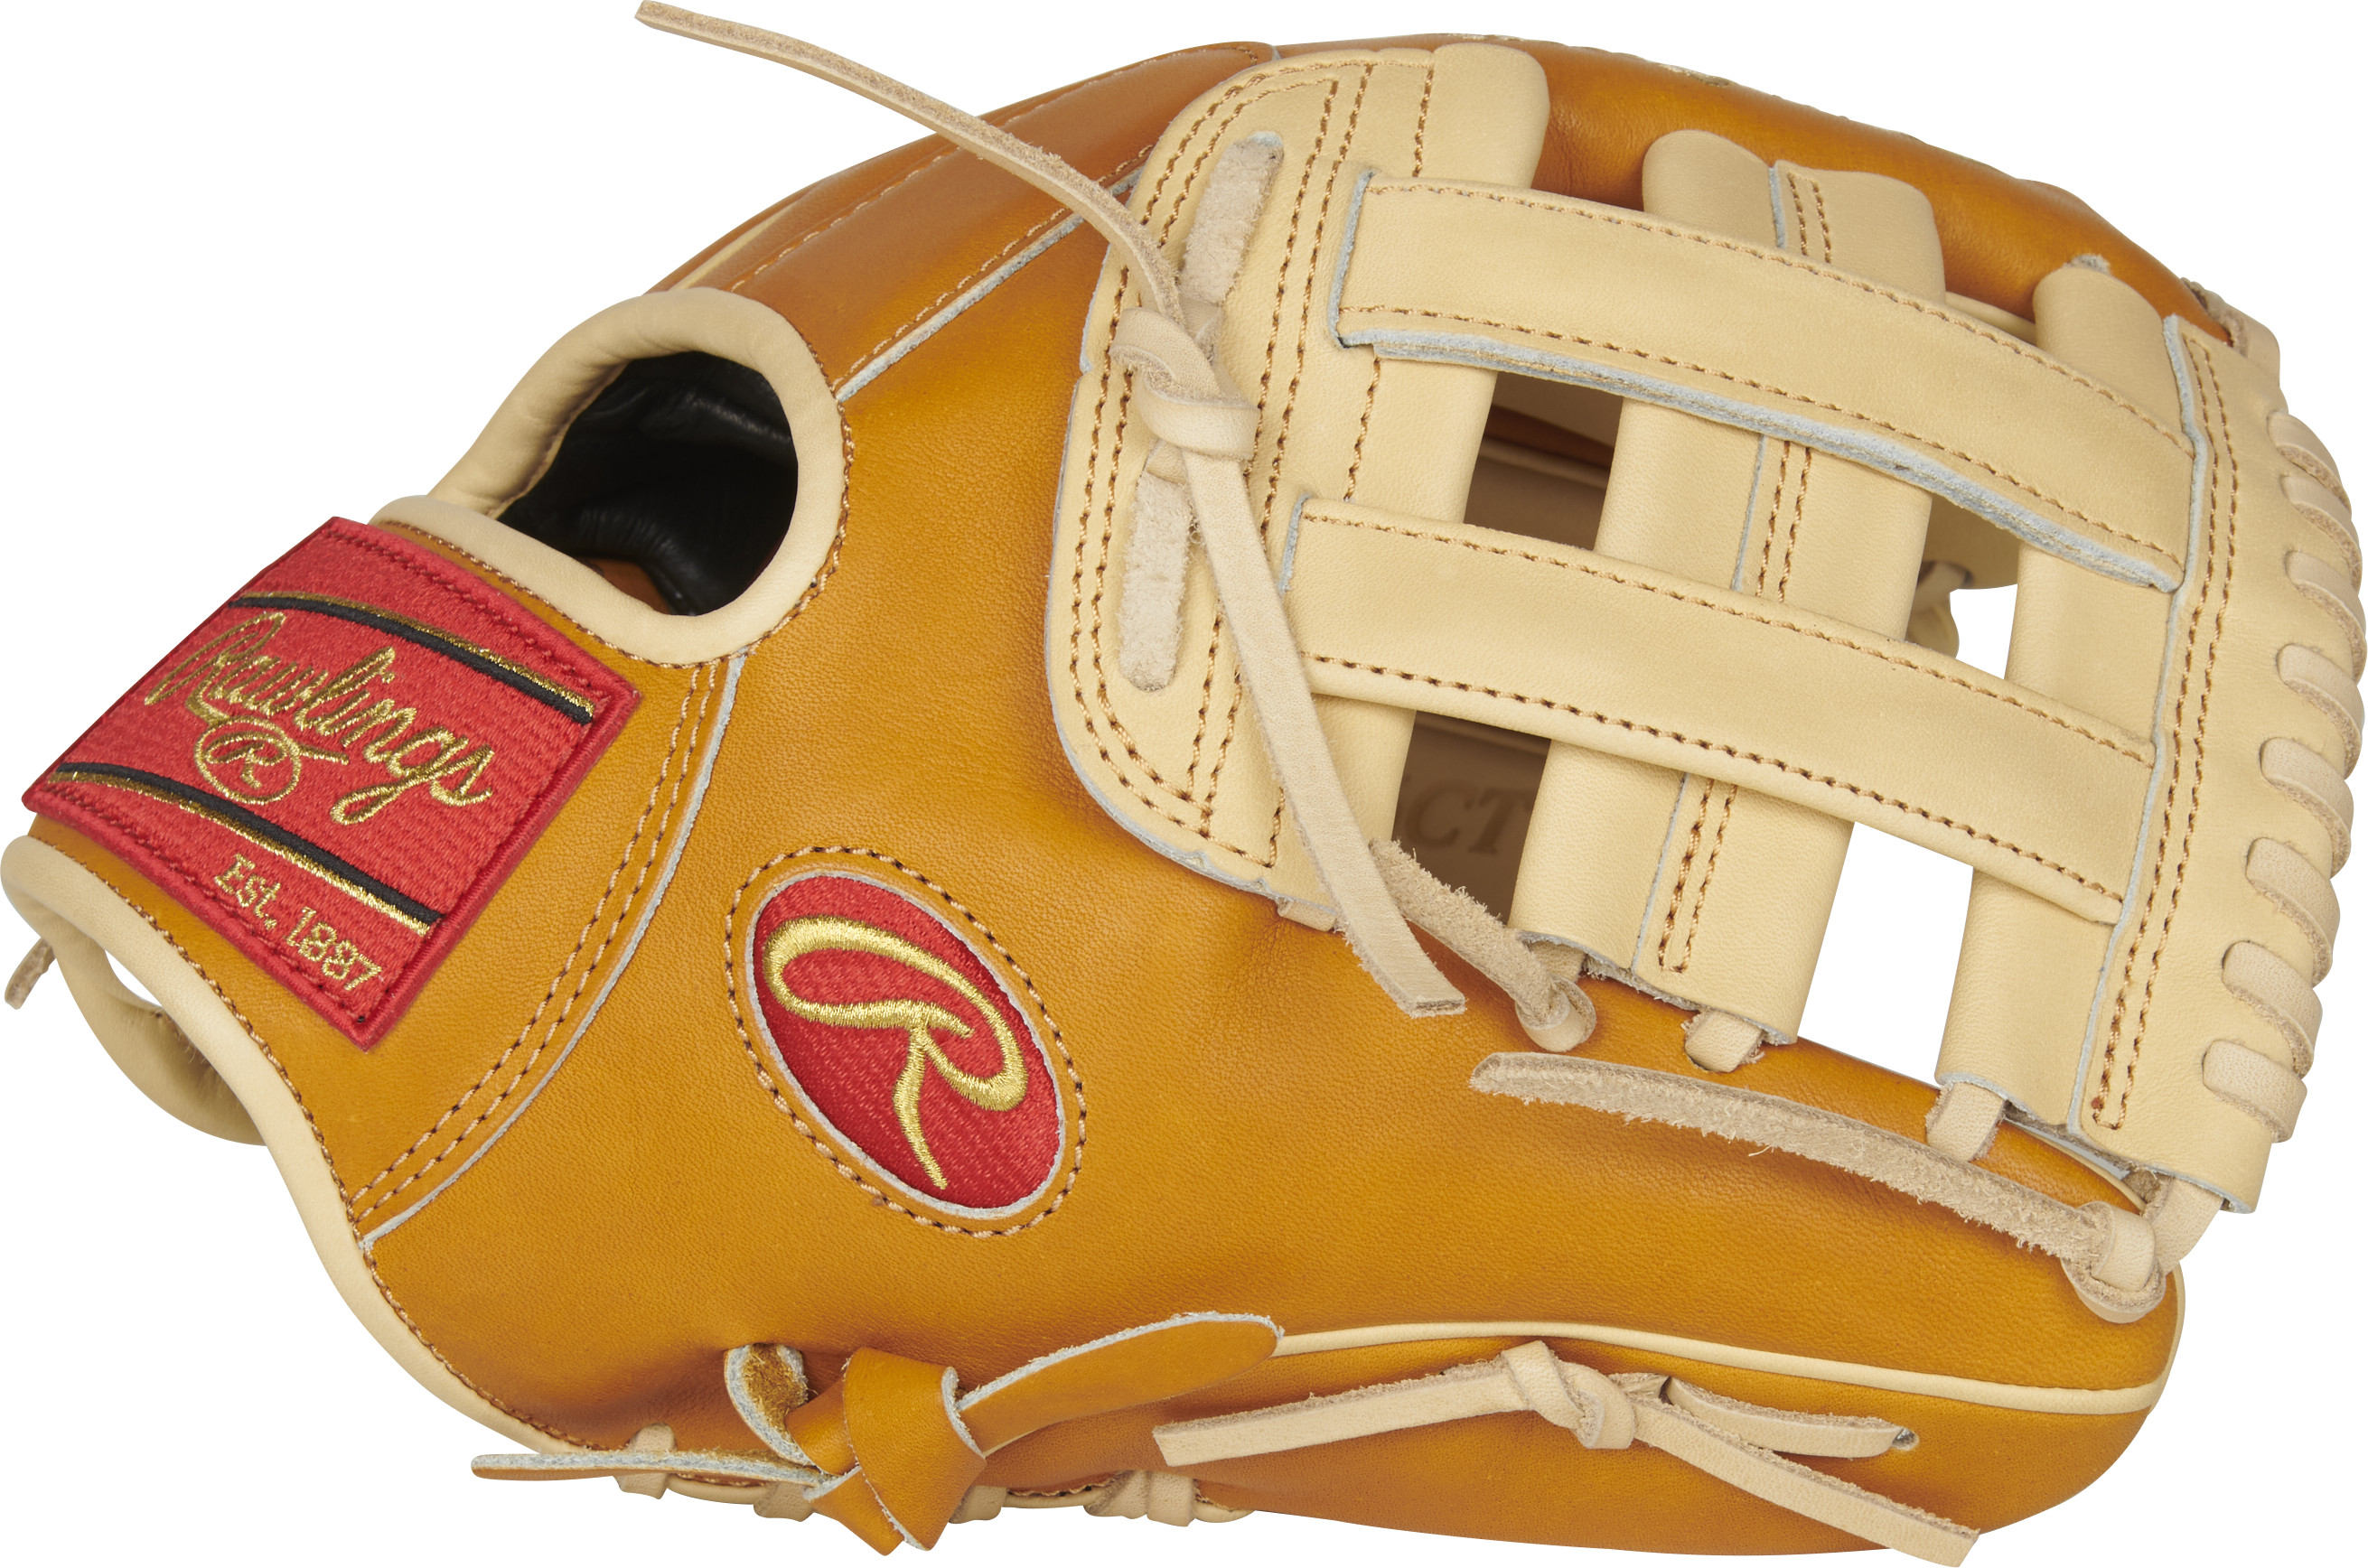 http://www.bestbatdeals.com/images/rawlingsgloves/PROS204-6CT-3.jpg